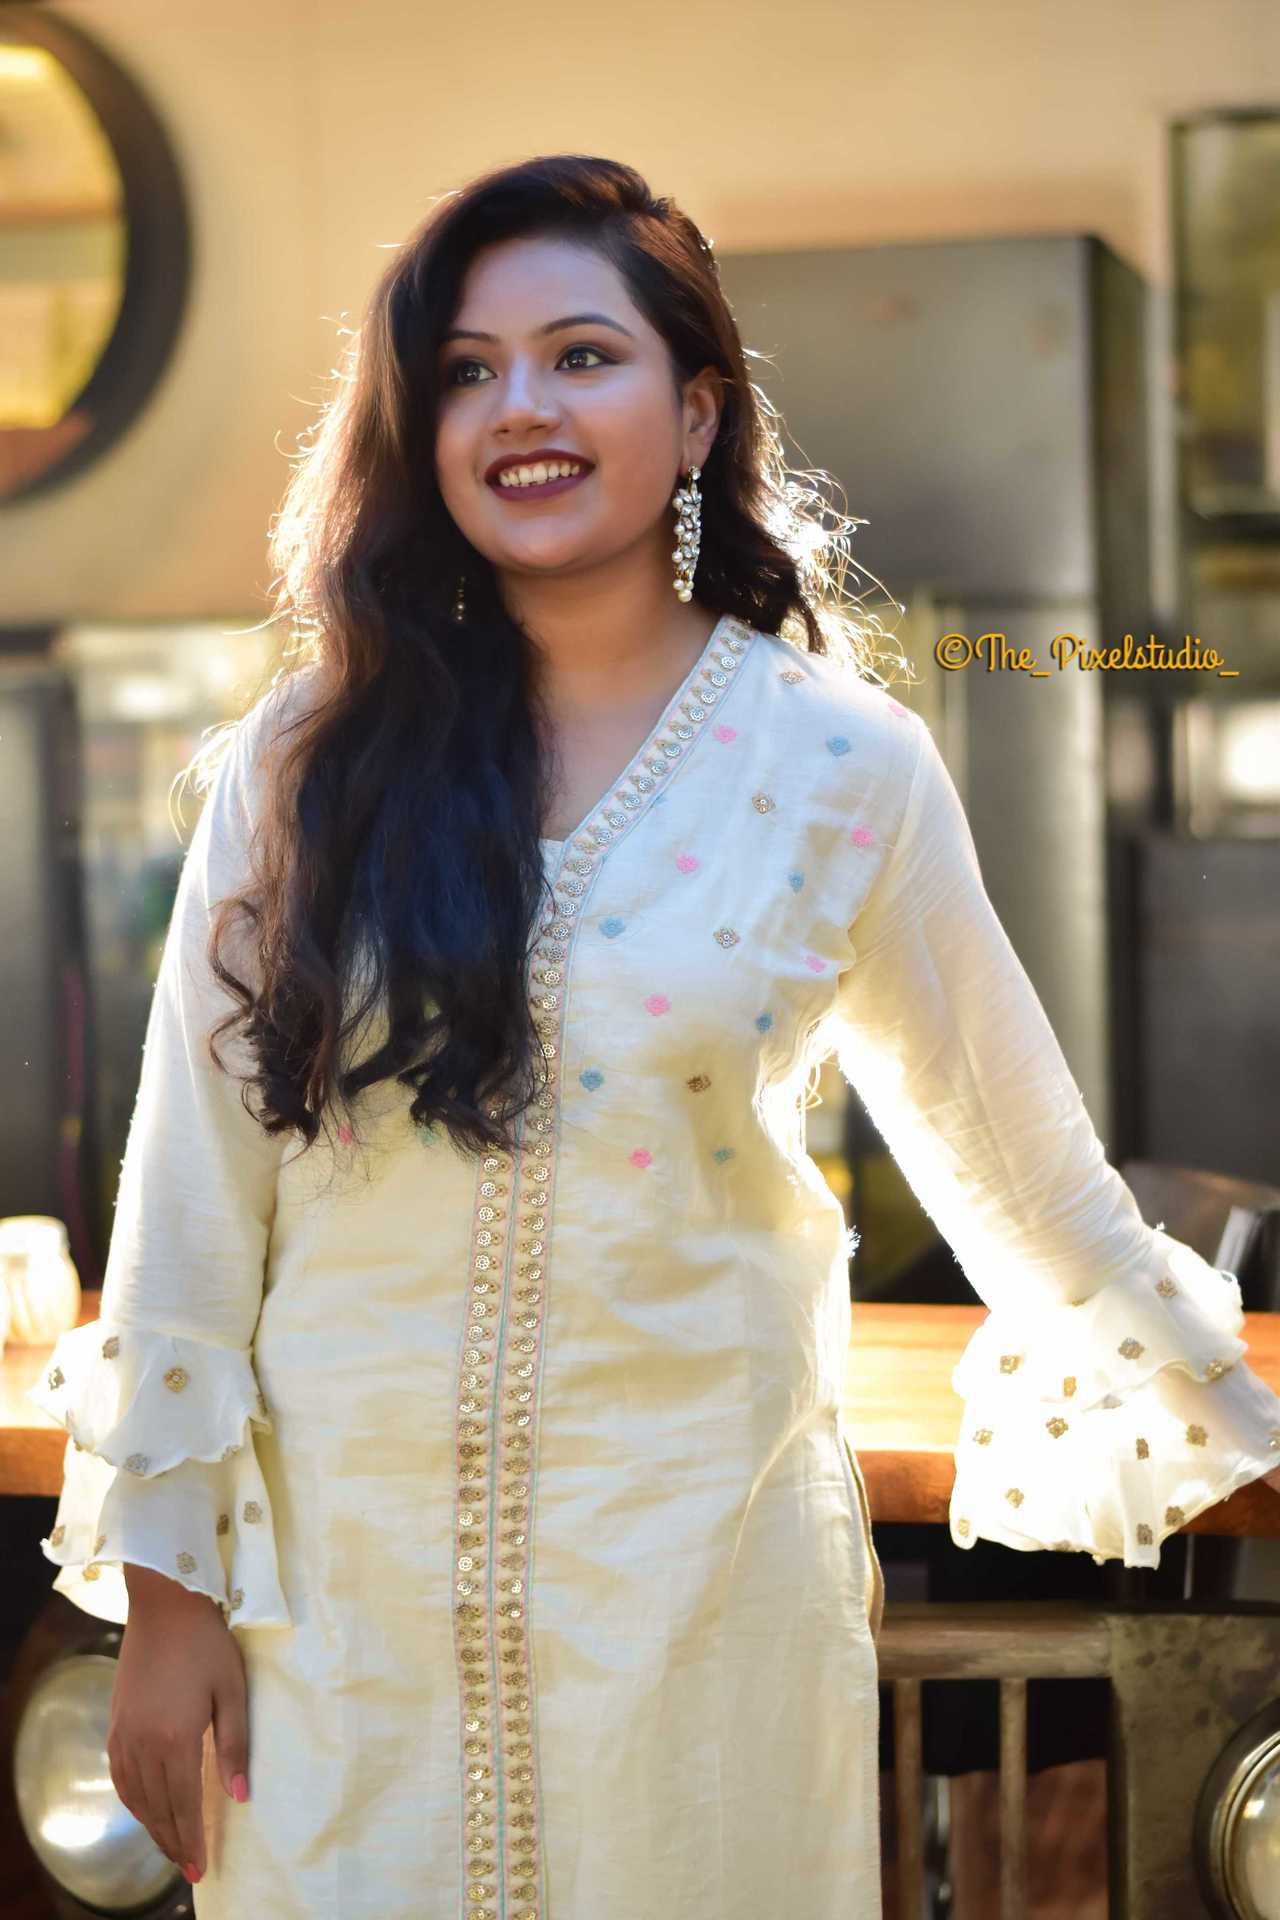 The Fashion Curve by Madhurima - Picture_20190604_001205128